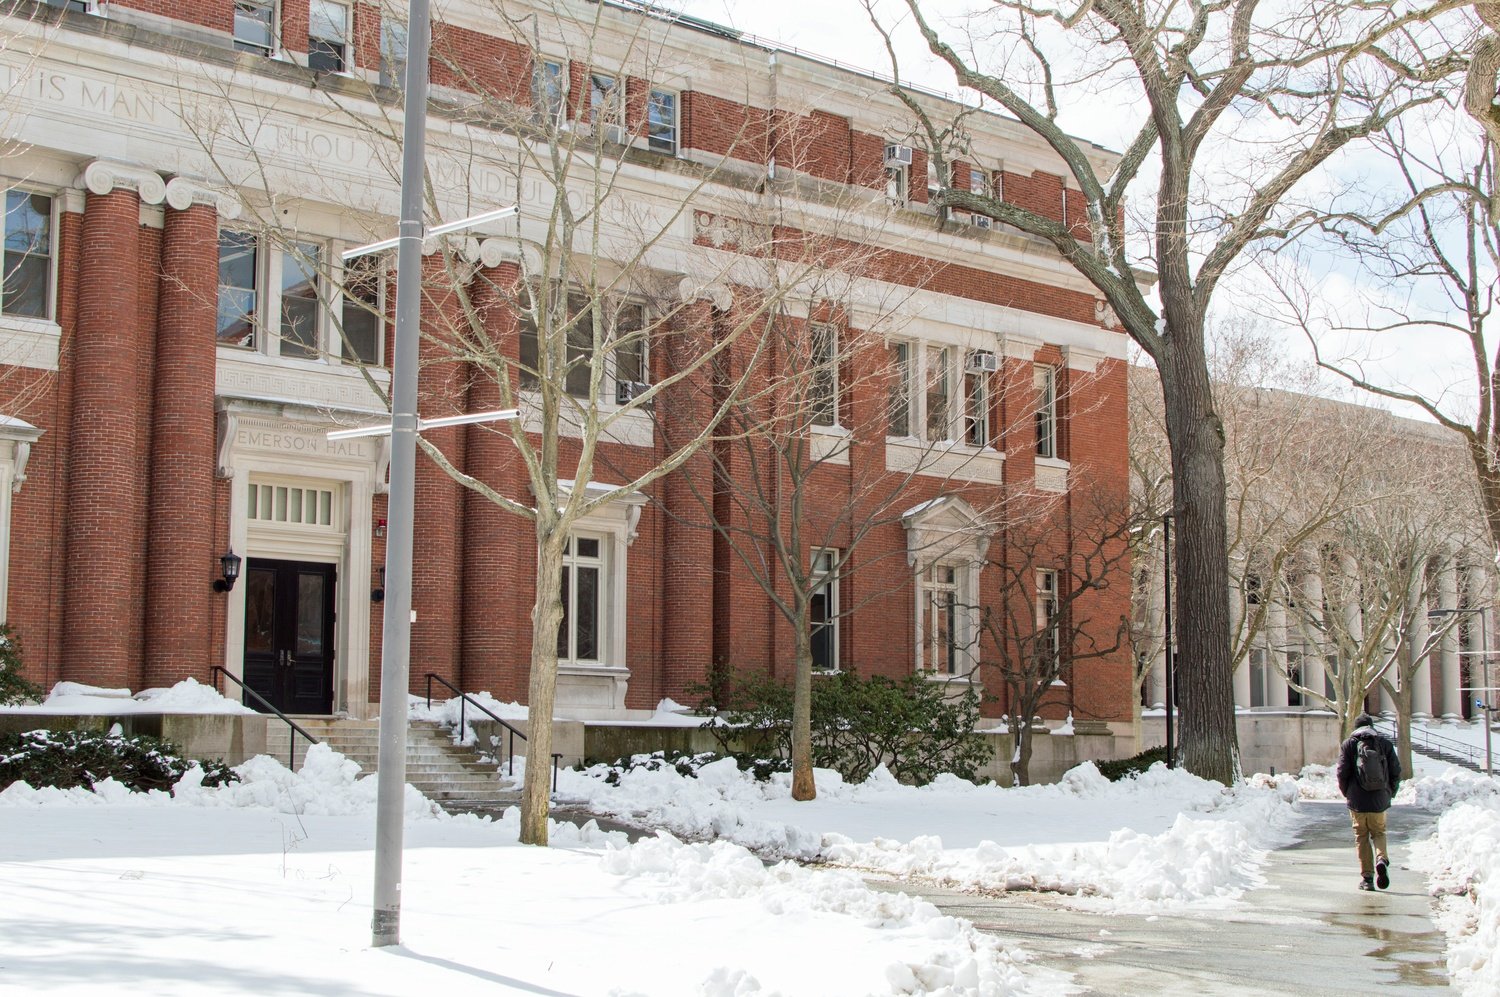 The Philosophy Department is housed in Emerson Hall, which has partnered with the Computer Science Department to offer six courses with bases in both fields.